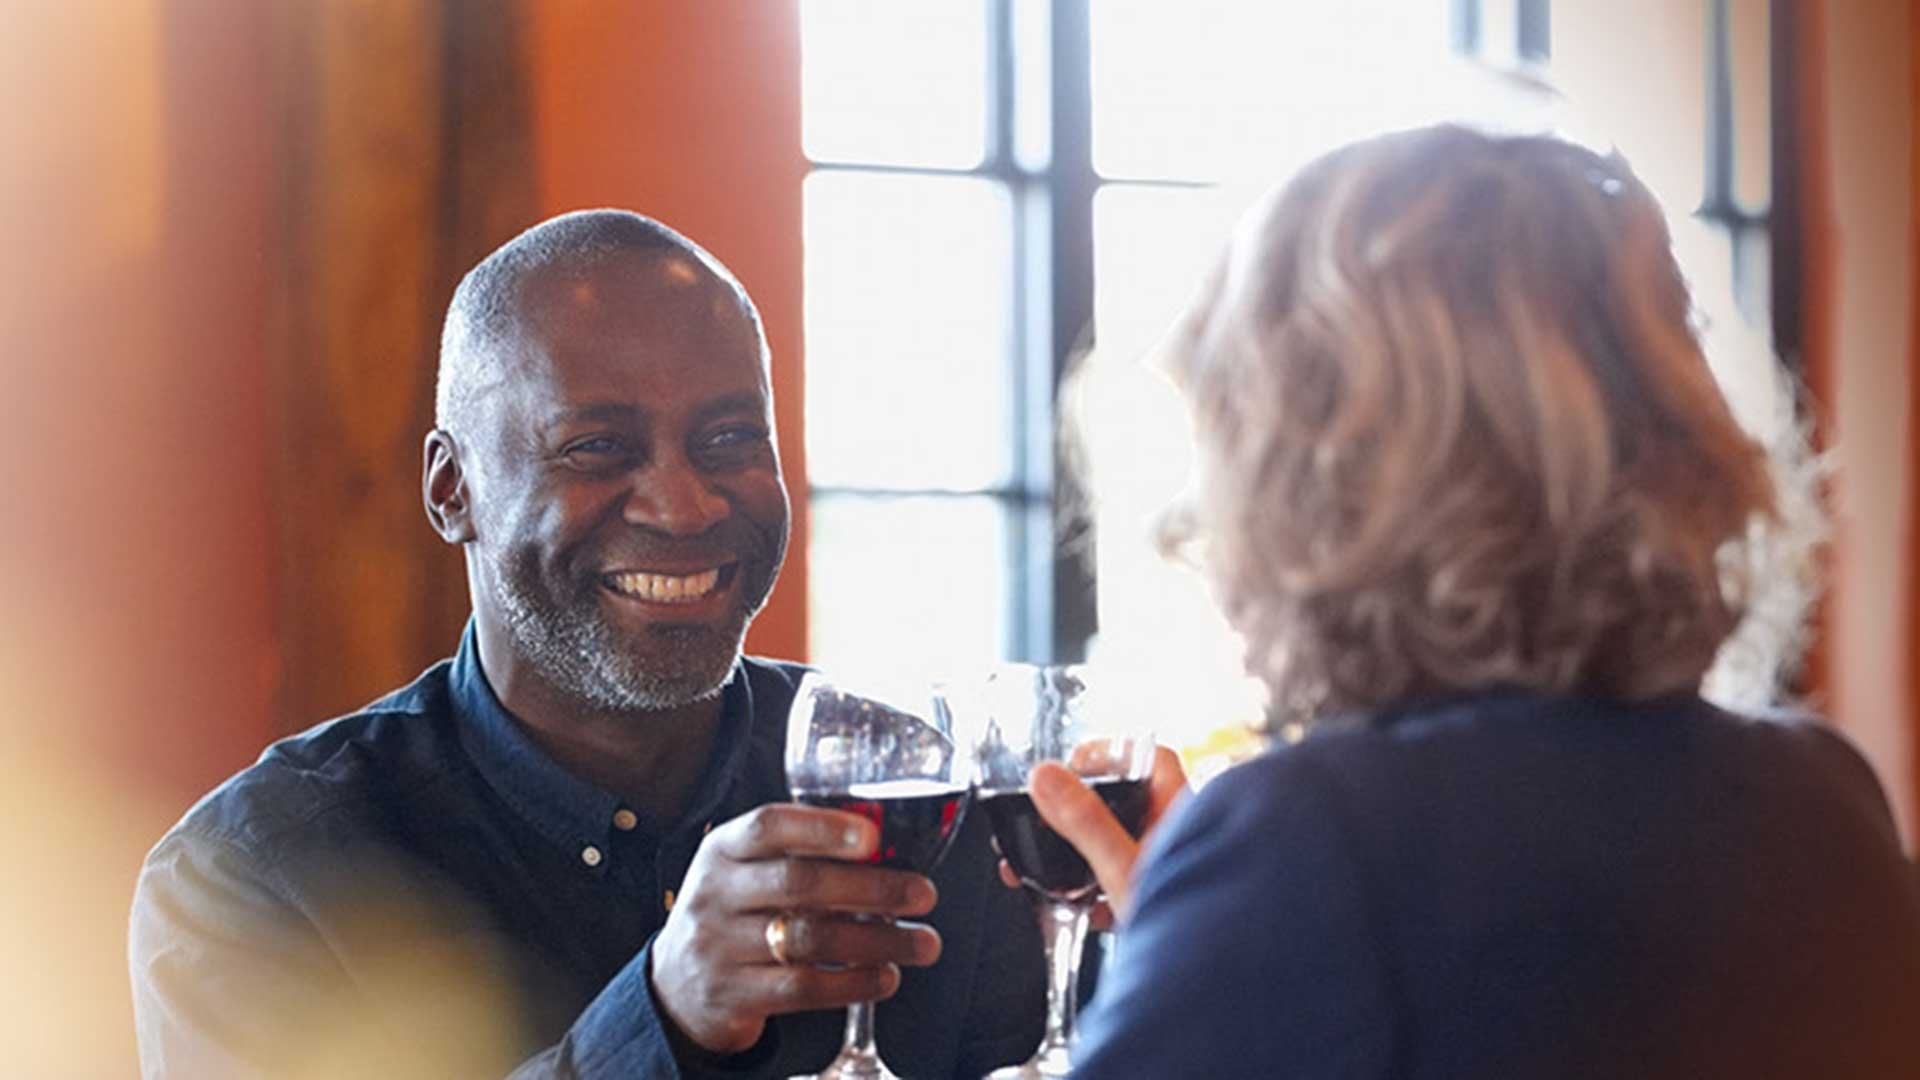 an african american man smiles as he touches his wine glass to that of his wife as they dine free of hearing difficulties